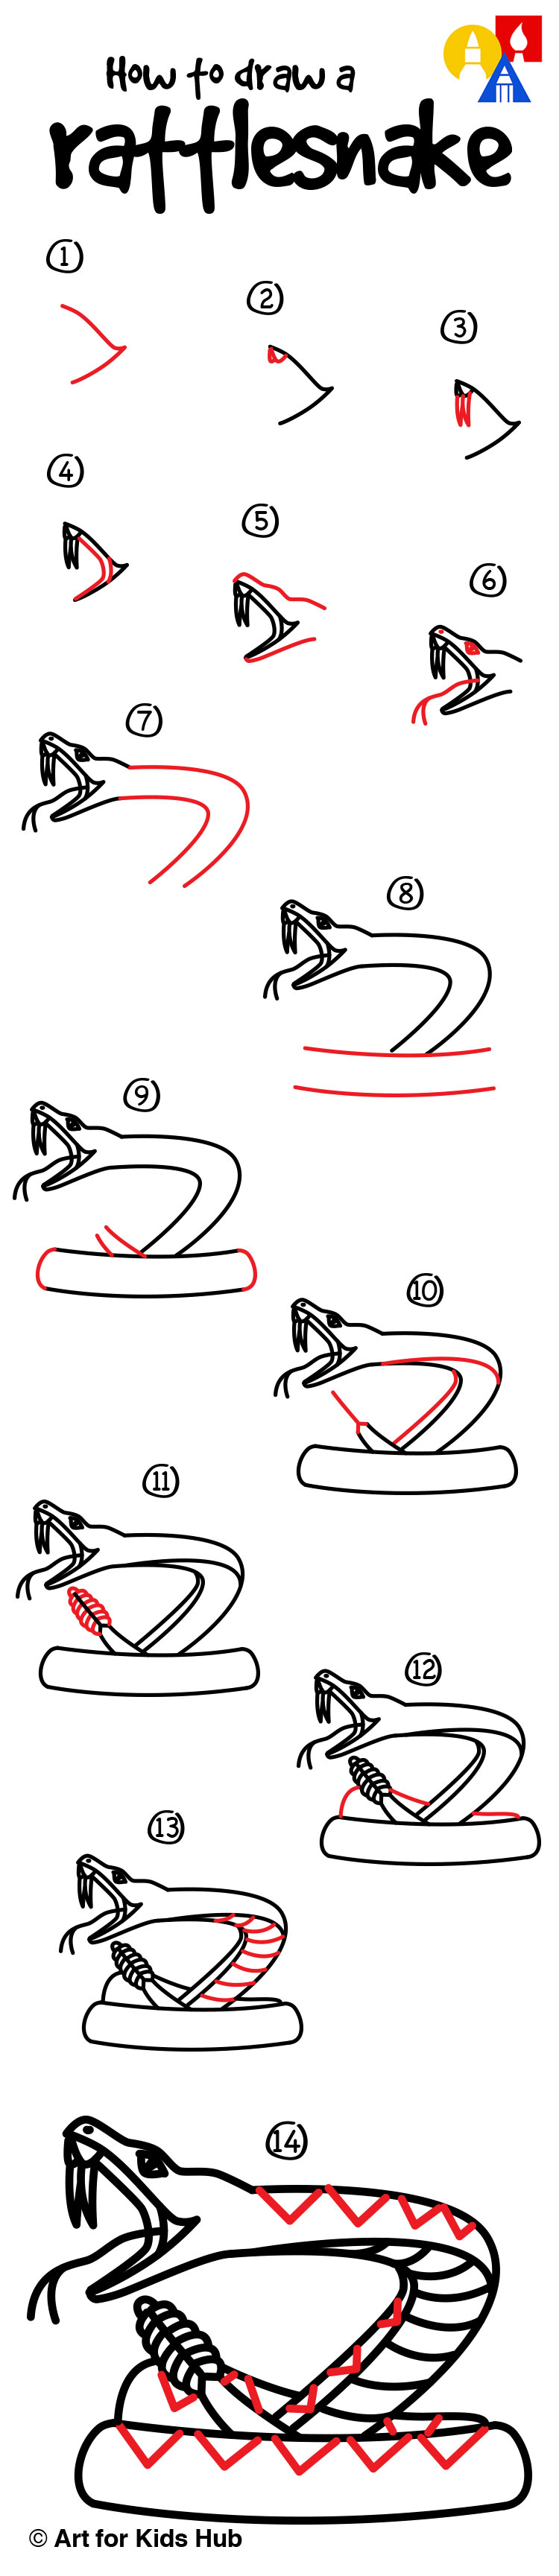 how to draw like picasso step by step